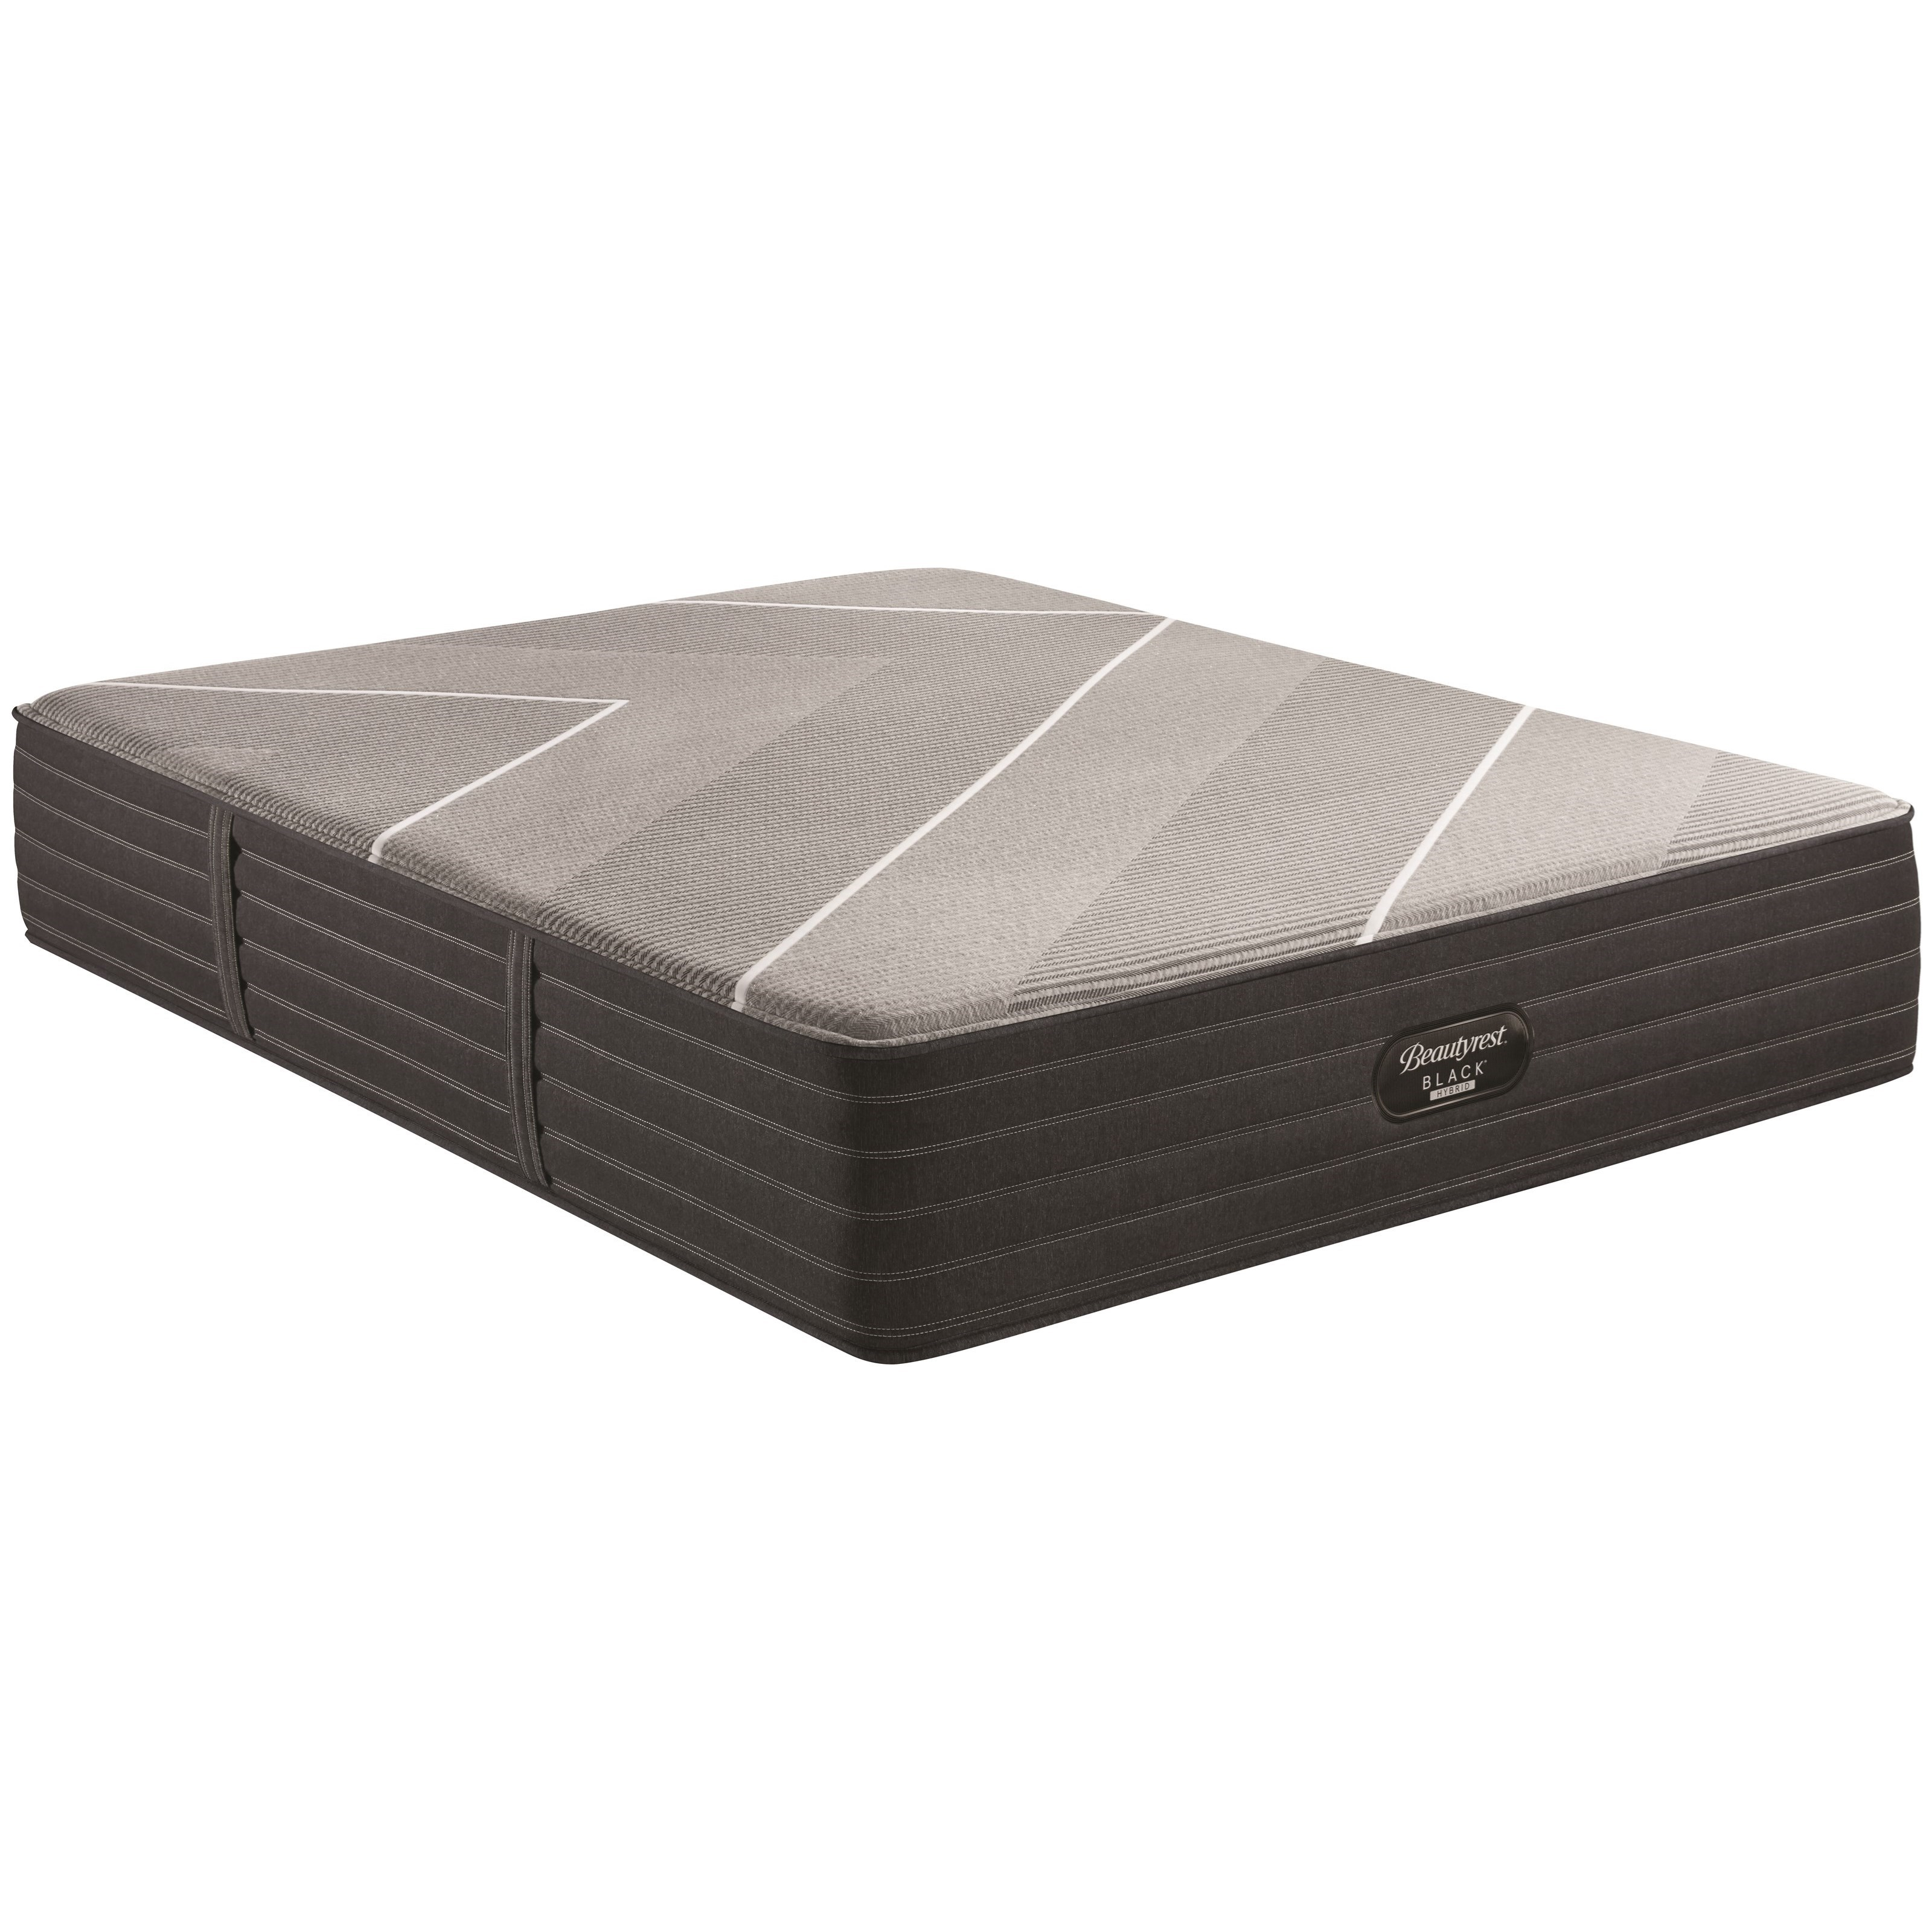 "X-Class Hybrid Ultra Plush King 15"" Ultra Plush Hybrid Mattress by Beautyrest at Furniture and ApplianceMart"